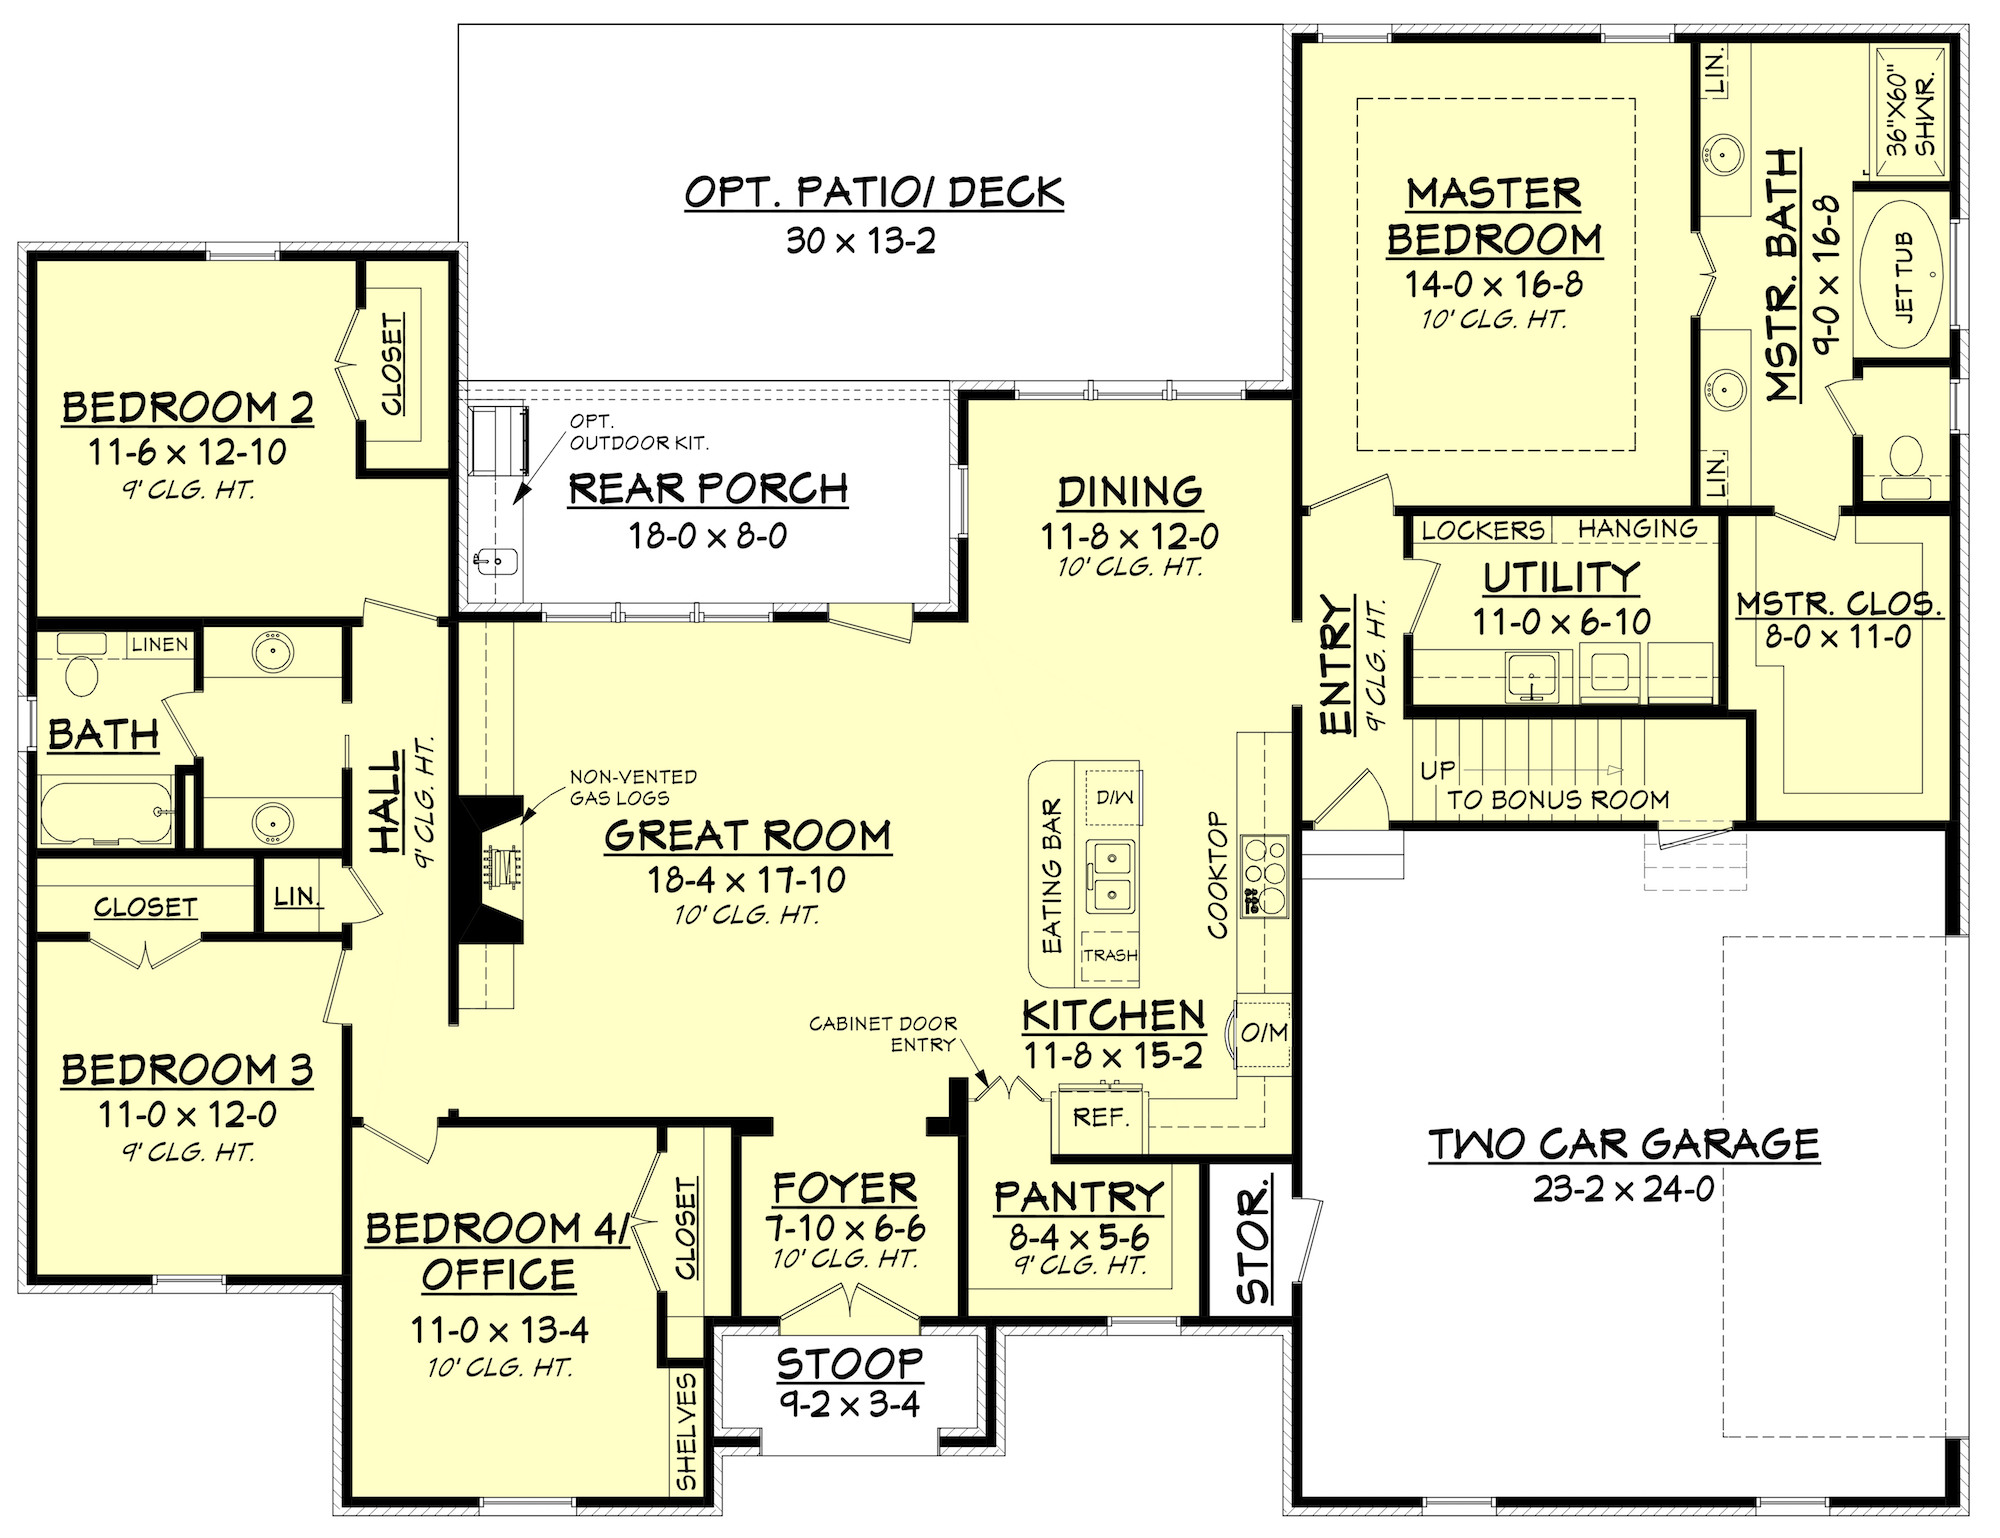 Acadian house plan 142 1154 4 bedrm 2210 sq ft home plan Story floor plans with garage collection